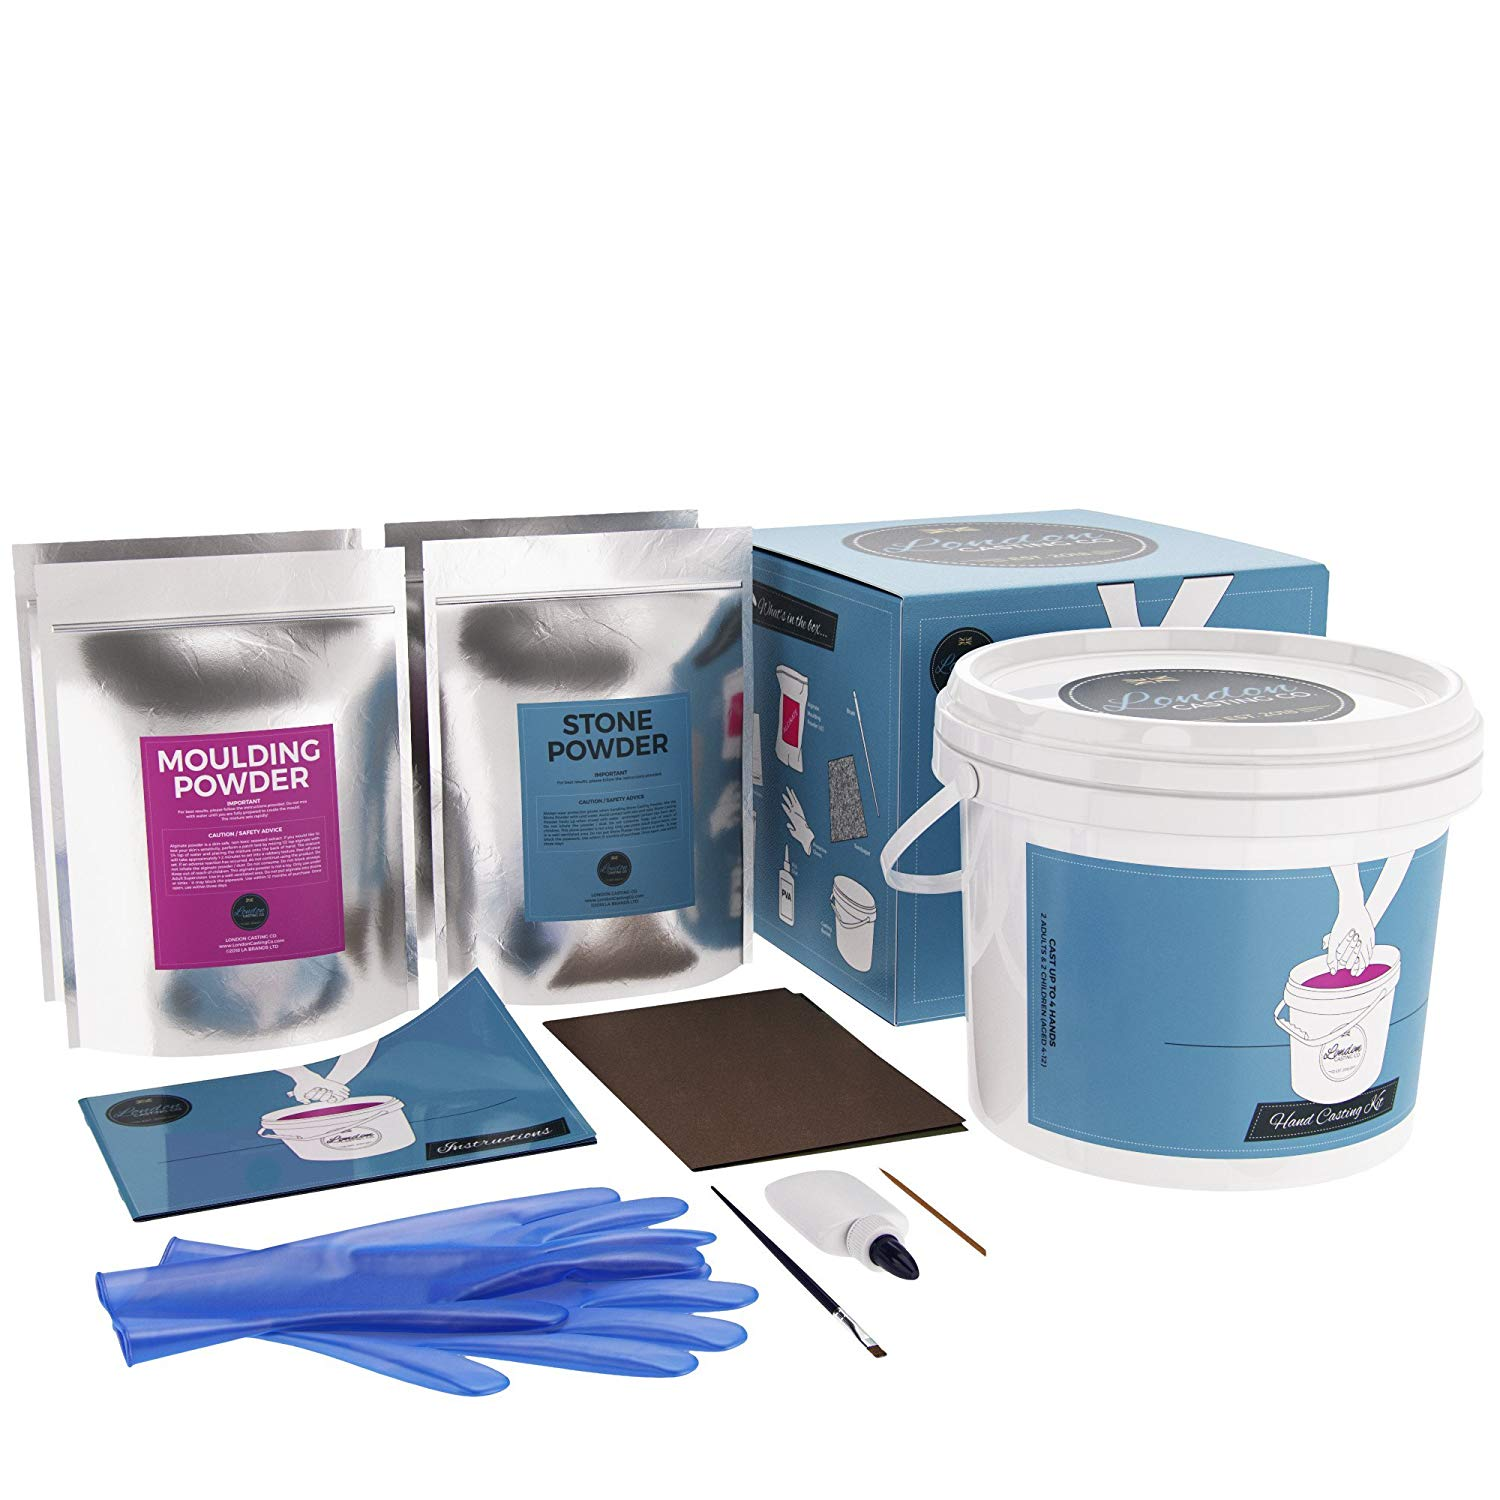 Family Casting Kit - 2 Adult + 2 Child Hands – London Casting Company